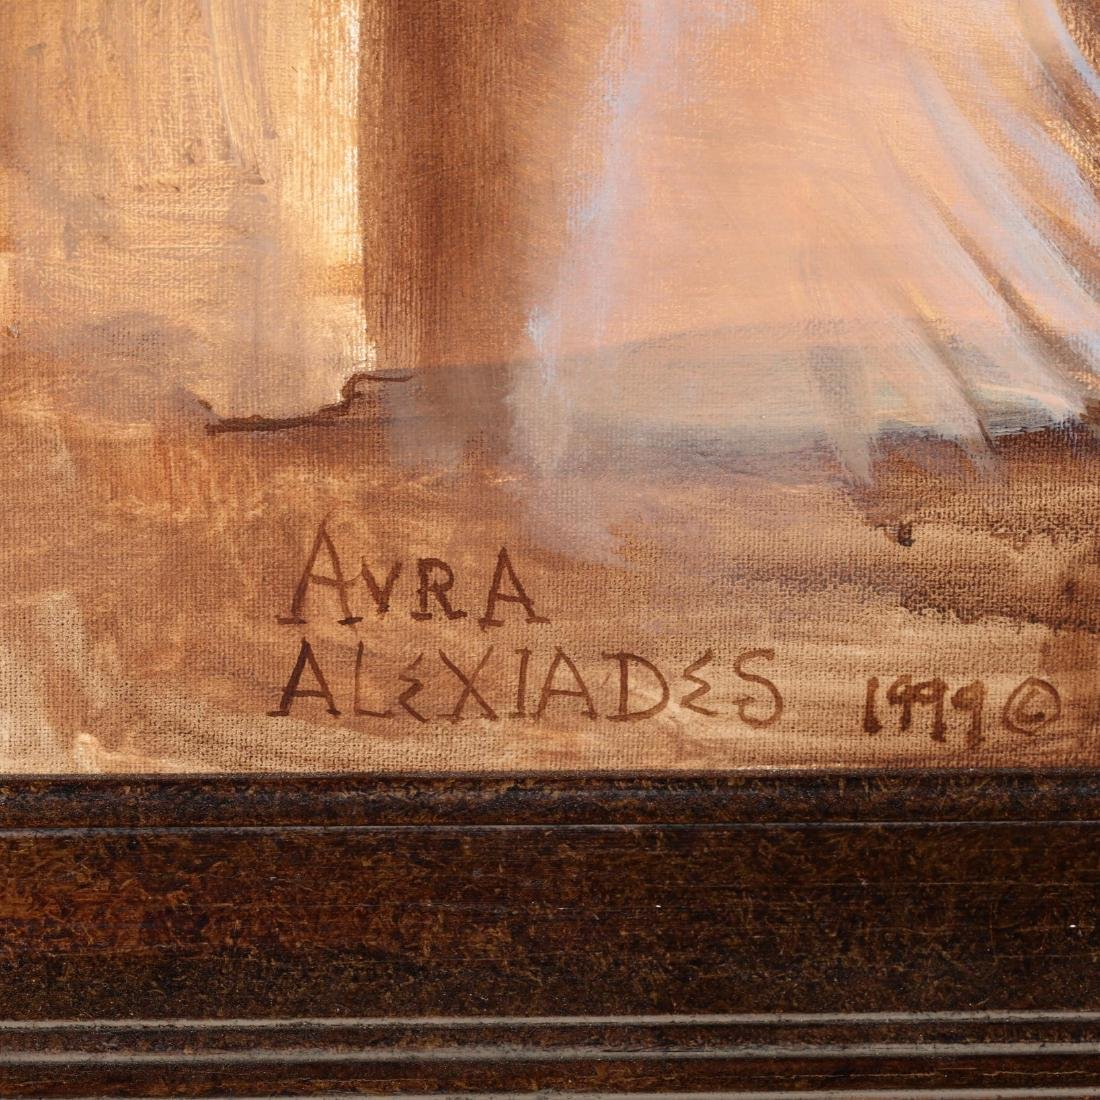 Athenian Horse, Signed by Avra Alexiades - 2